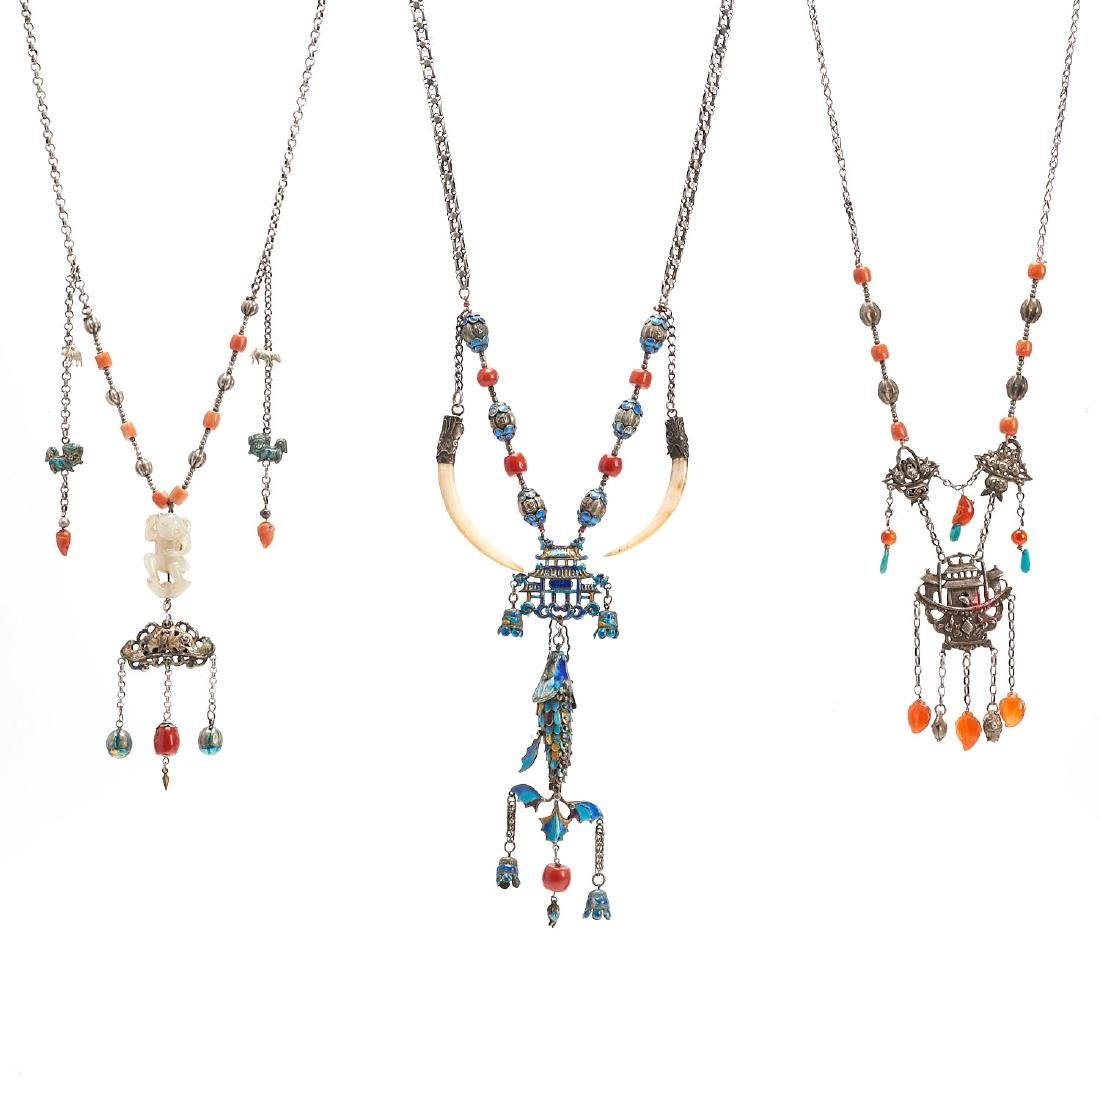 (3) Chinese necklaces